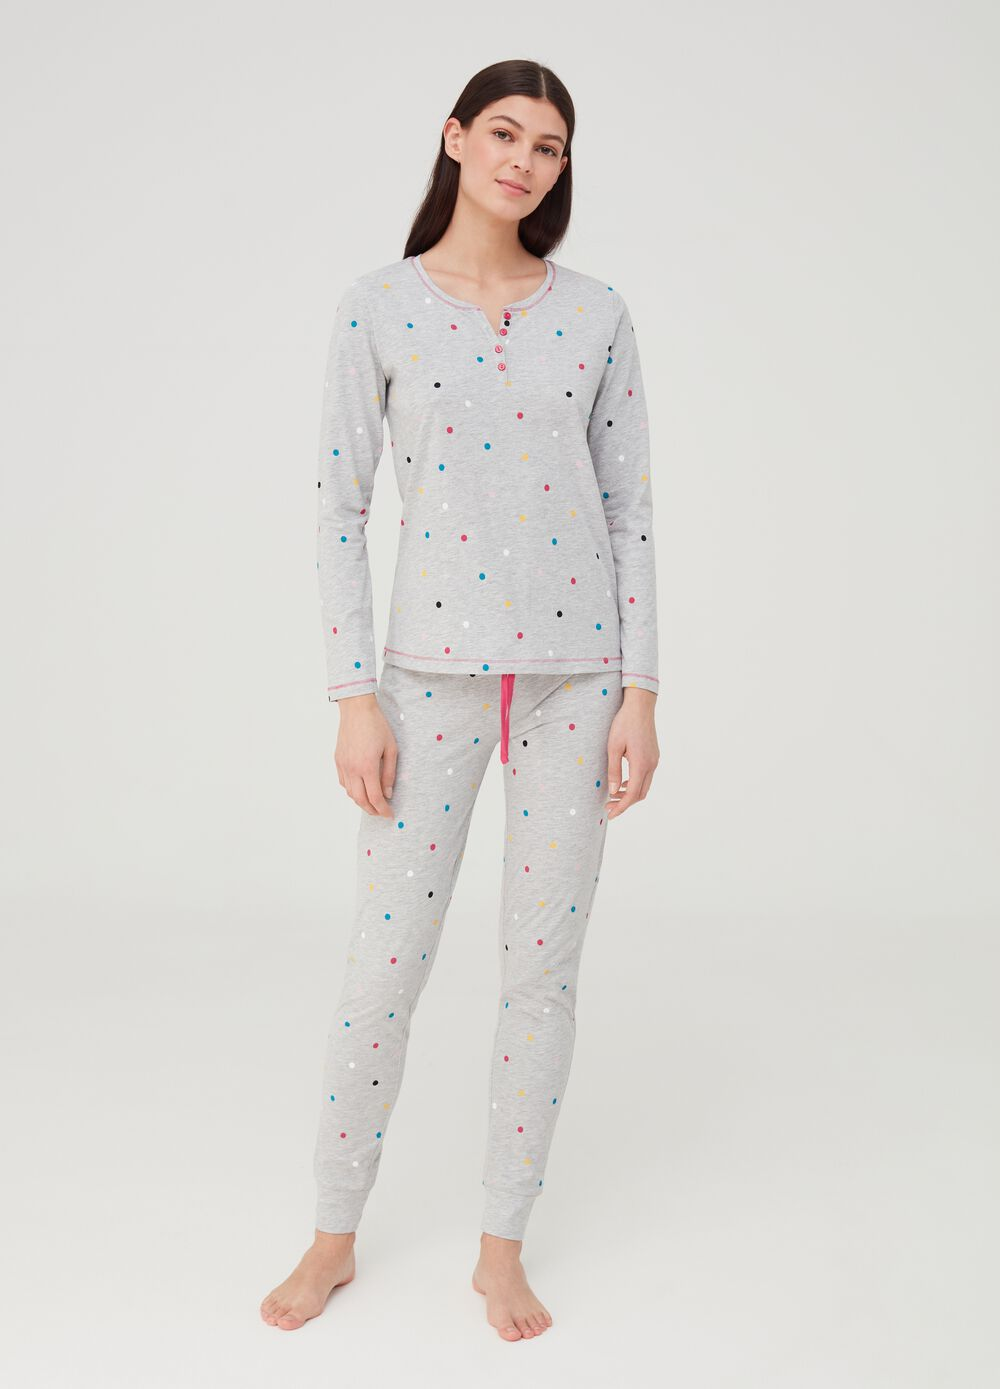 Pyjama trousers with polka dots